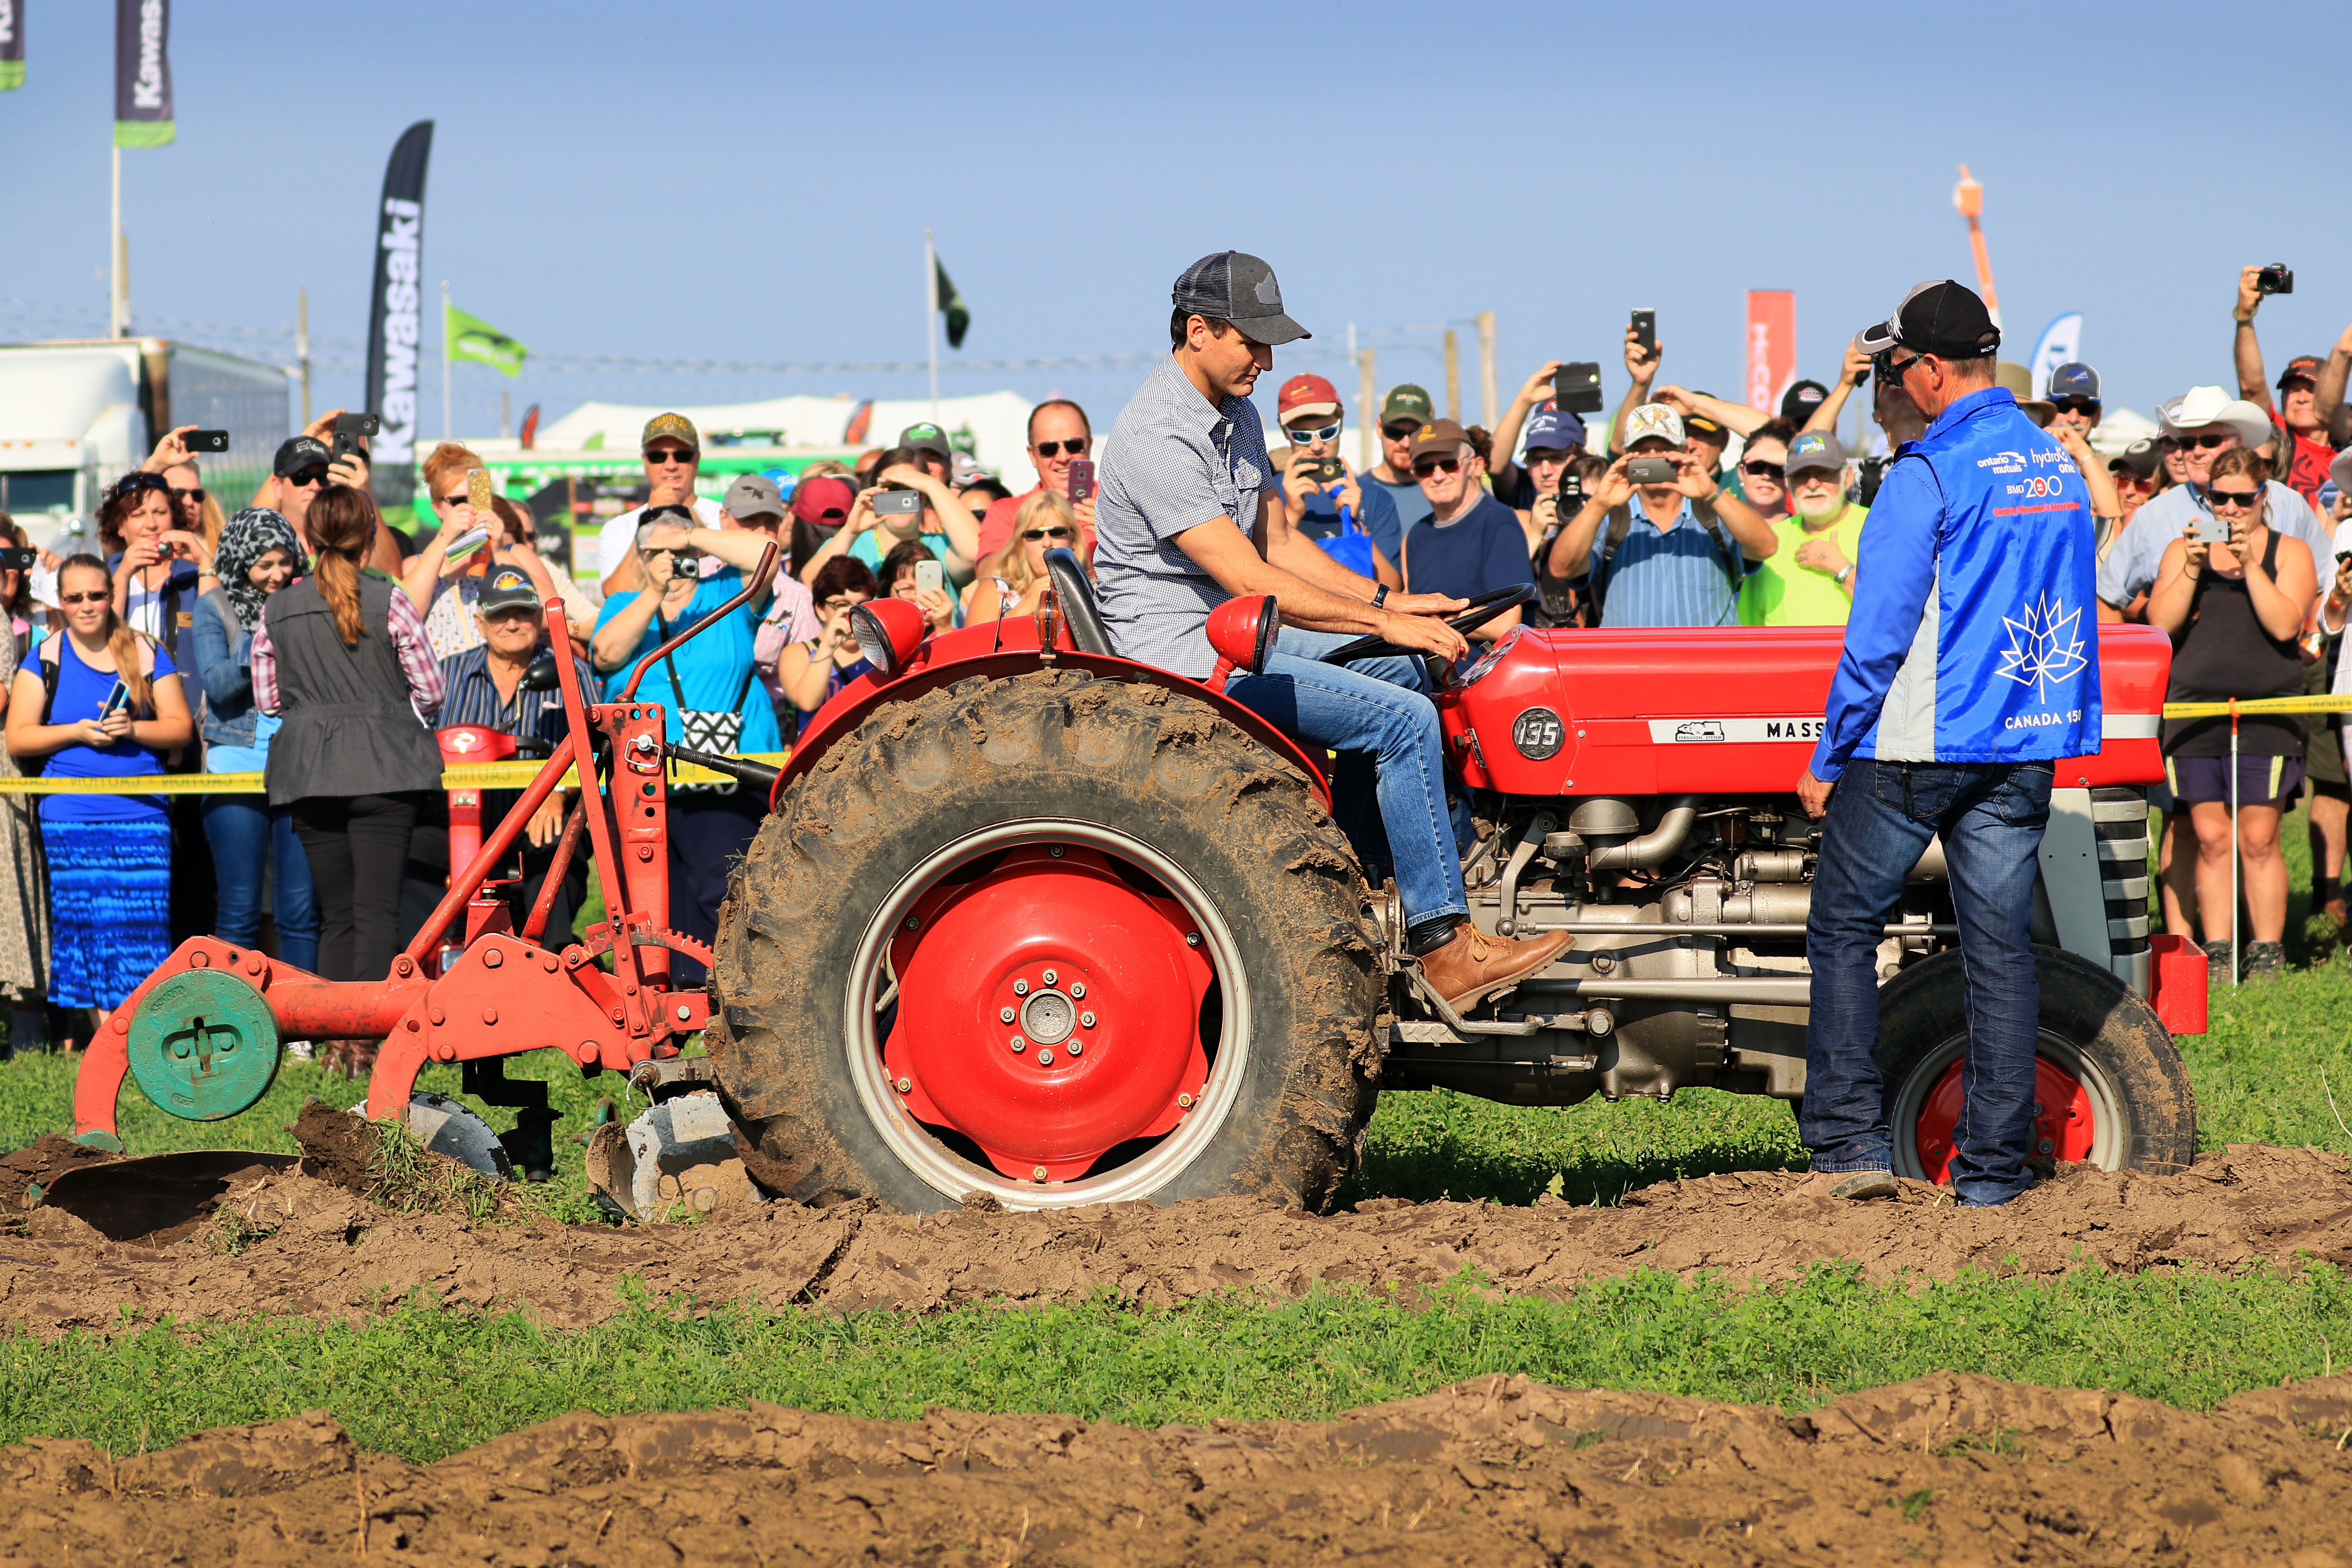 Canadian Prime Minister Arrives At IPM In Walton (VIDEO)